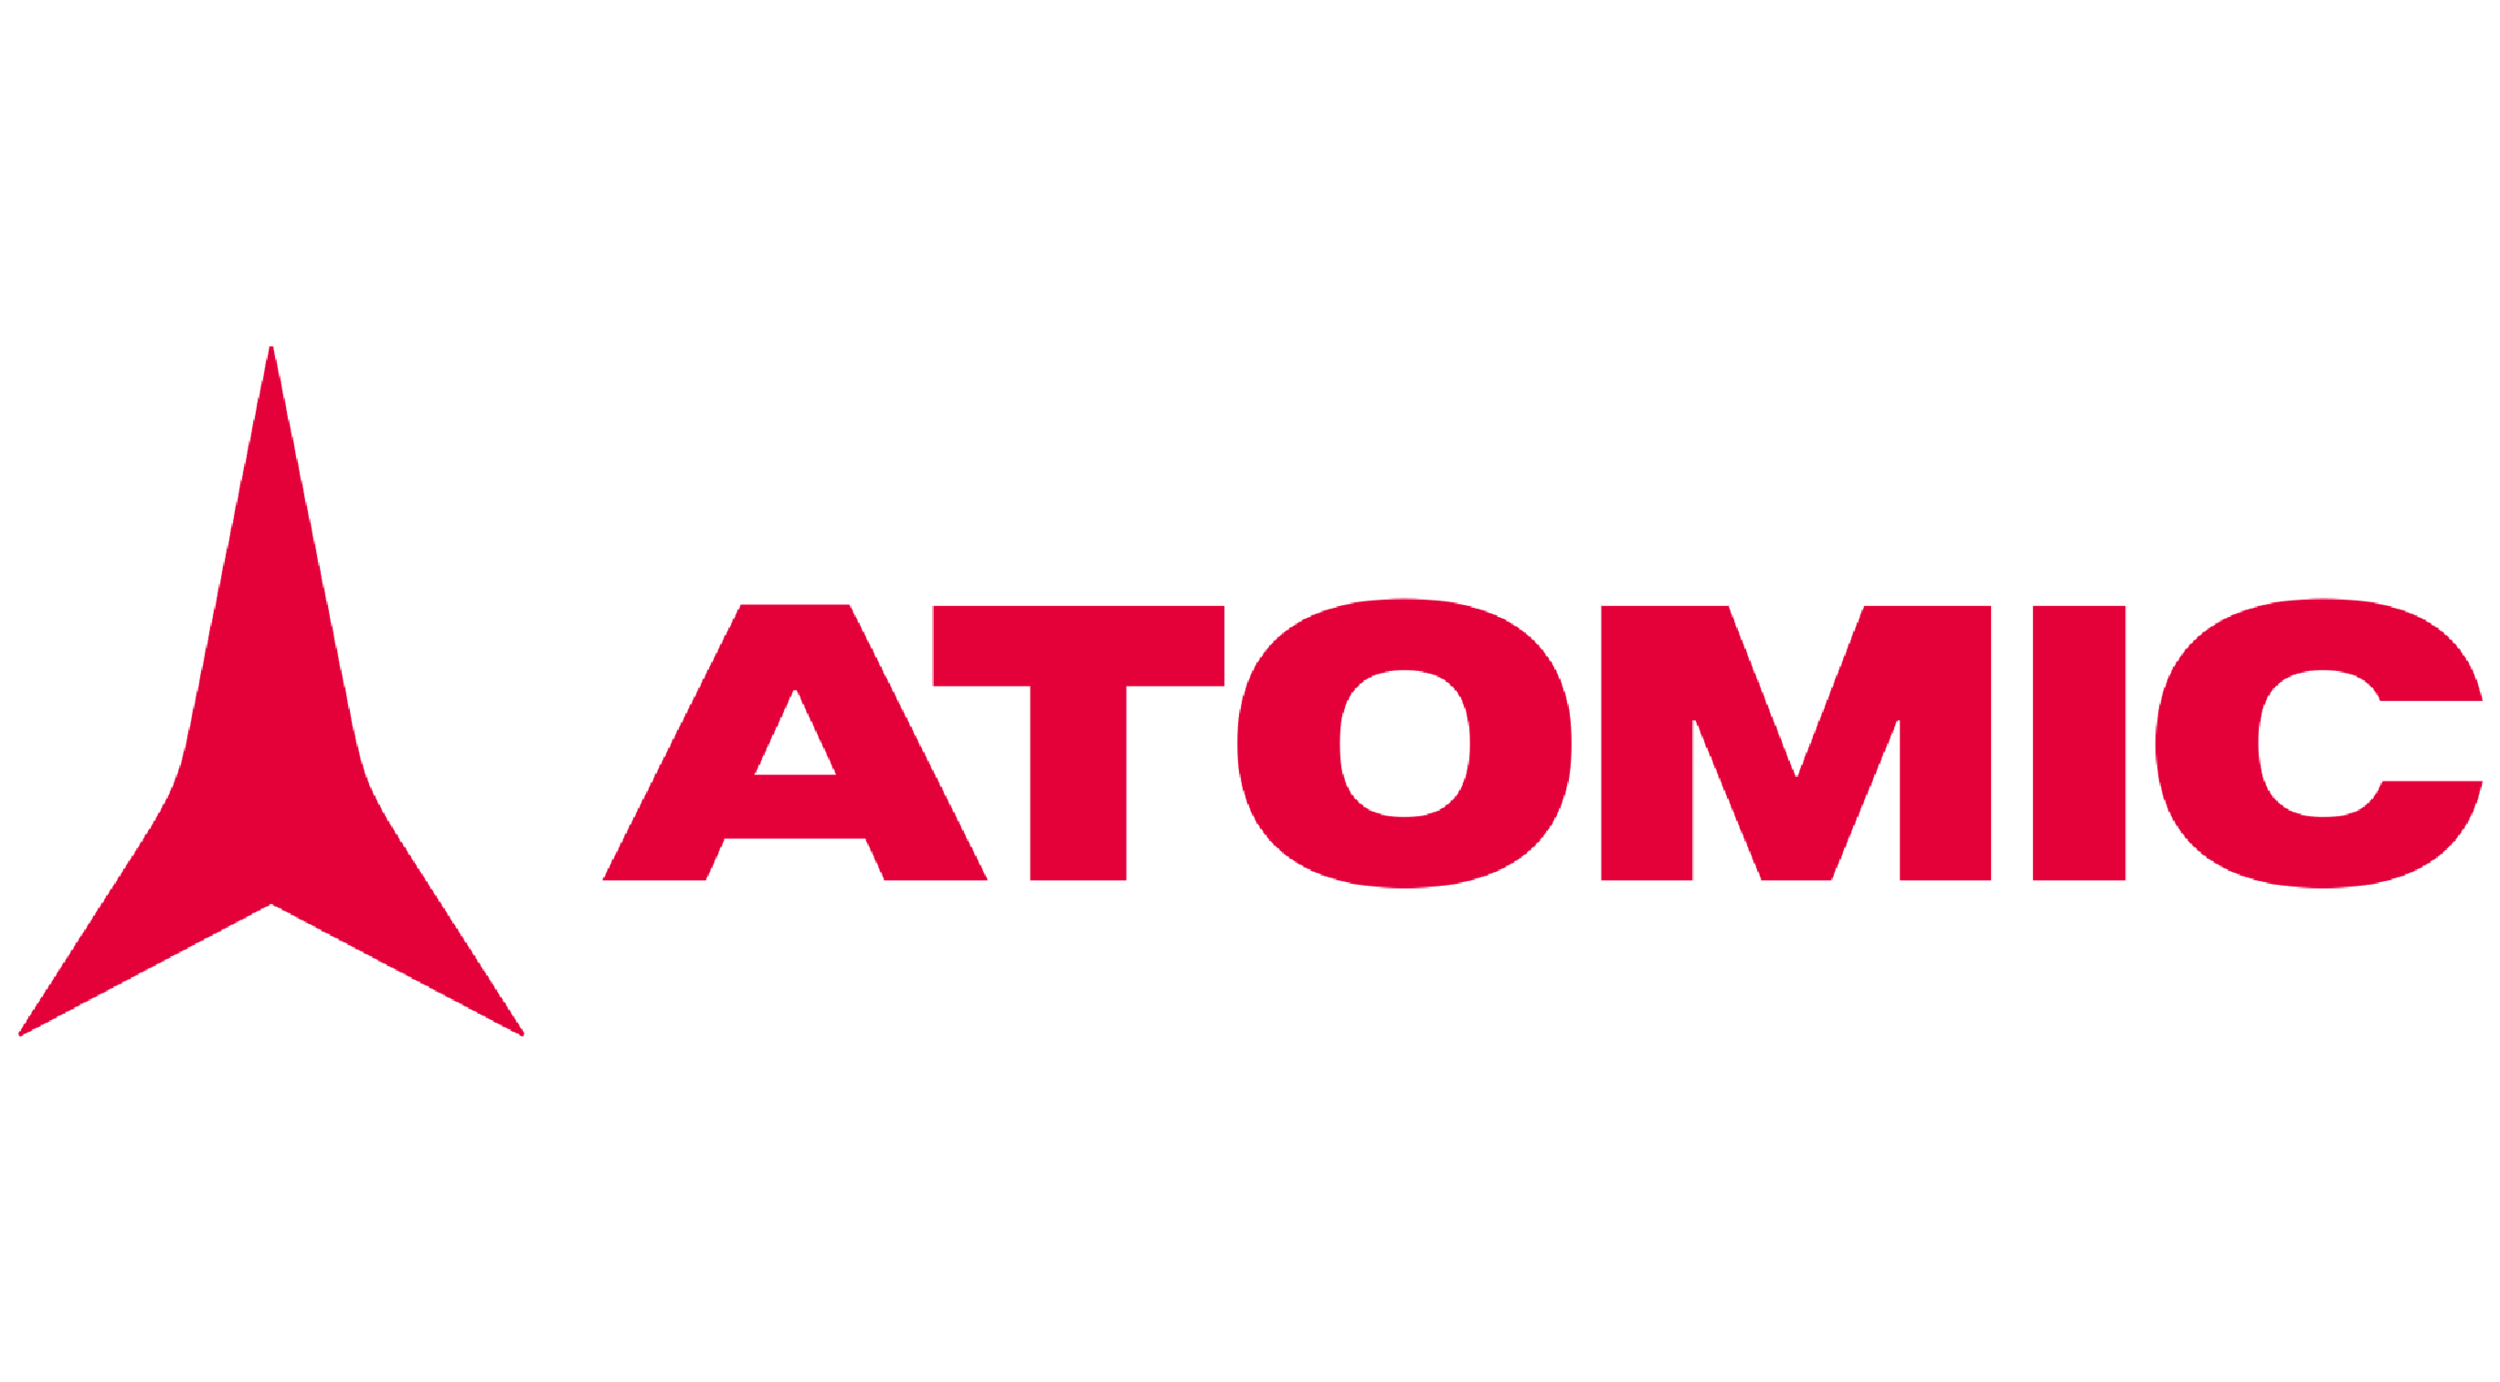 ATOMIC_new_logo.png